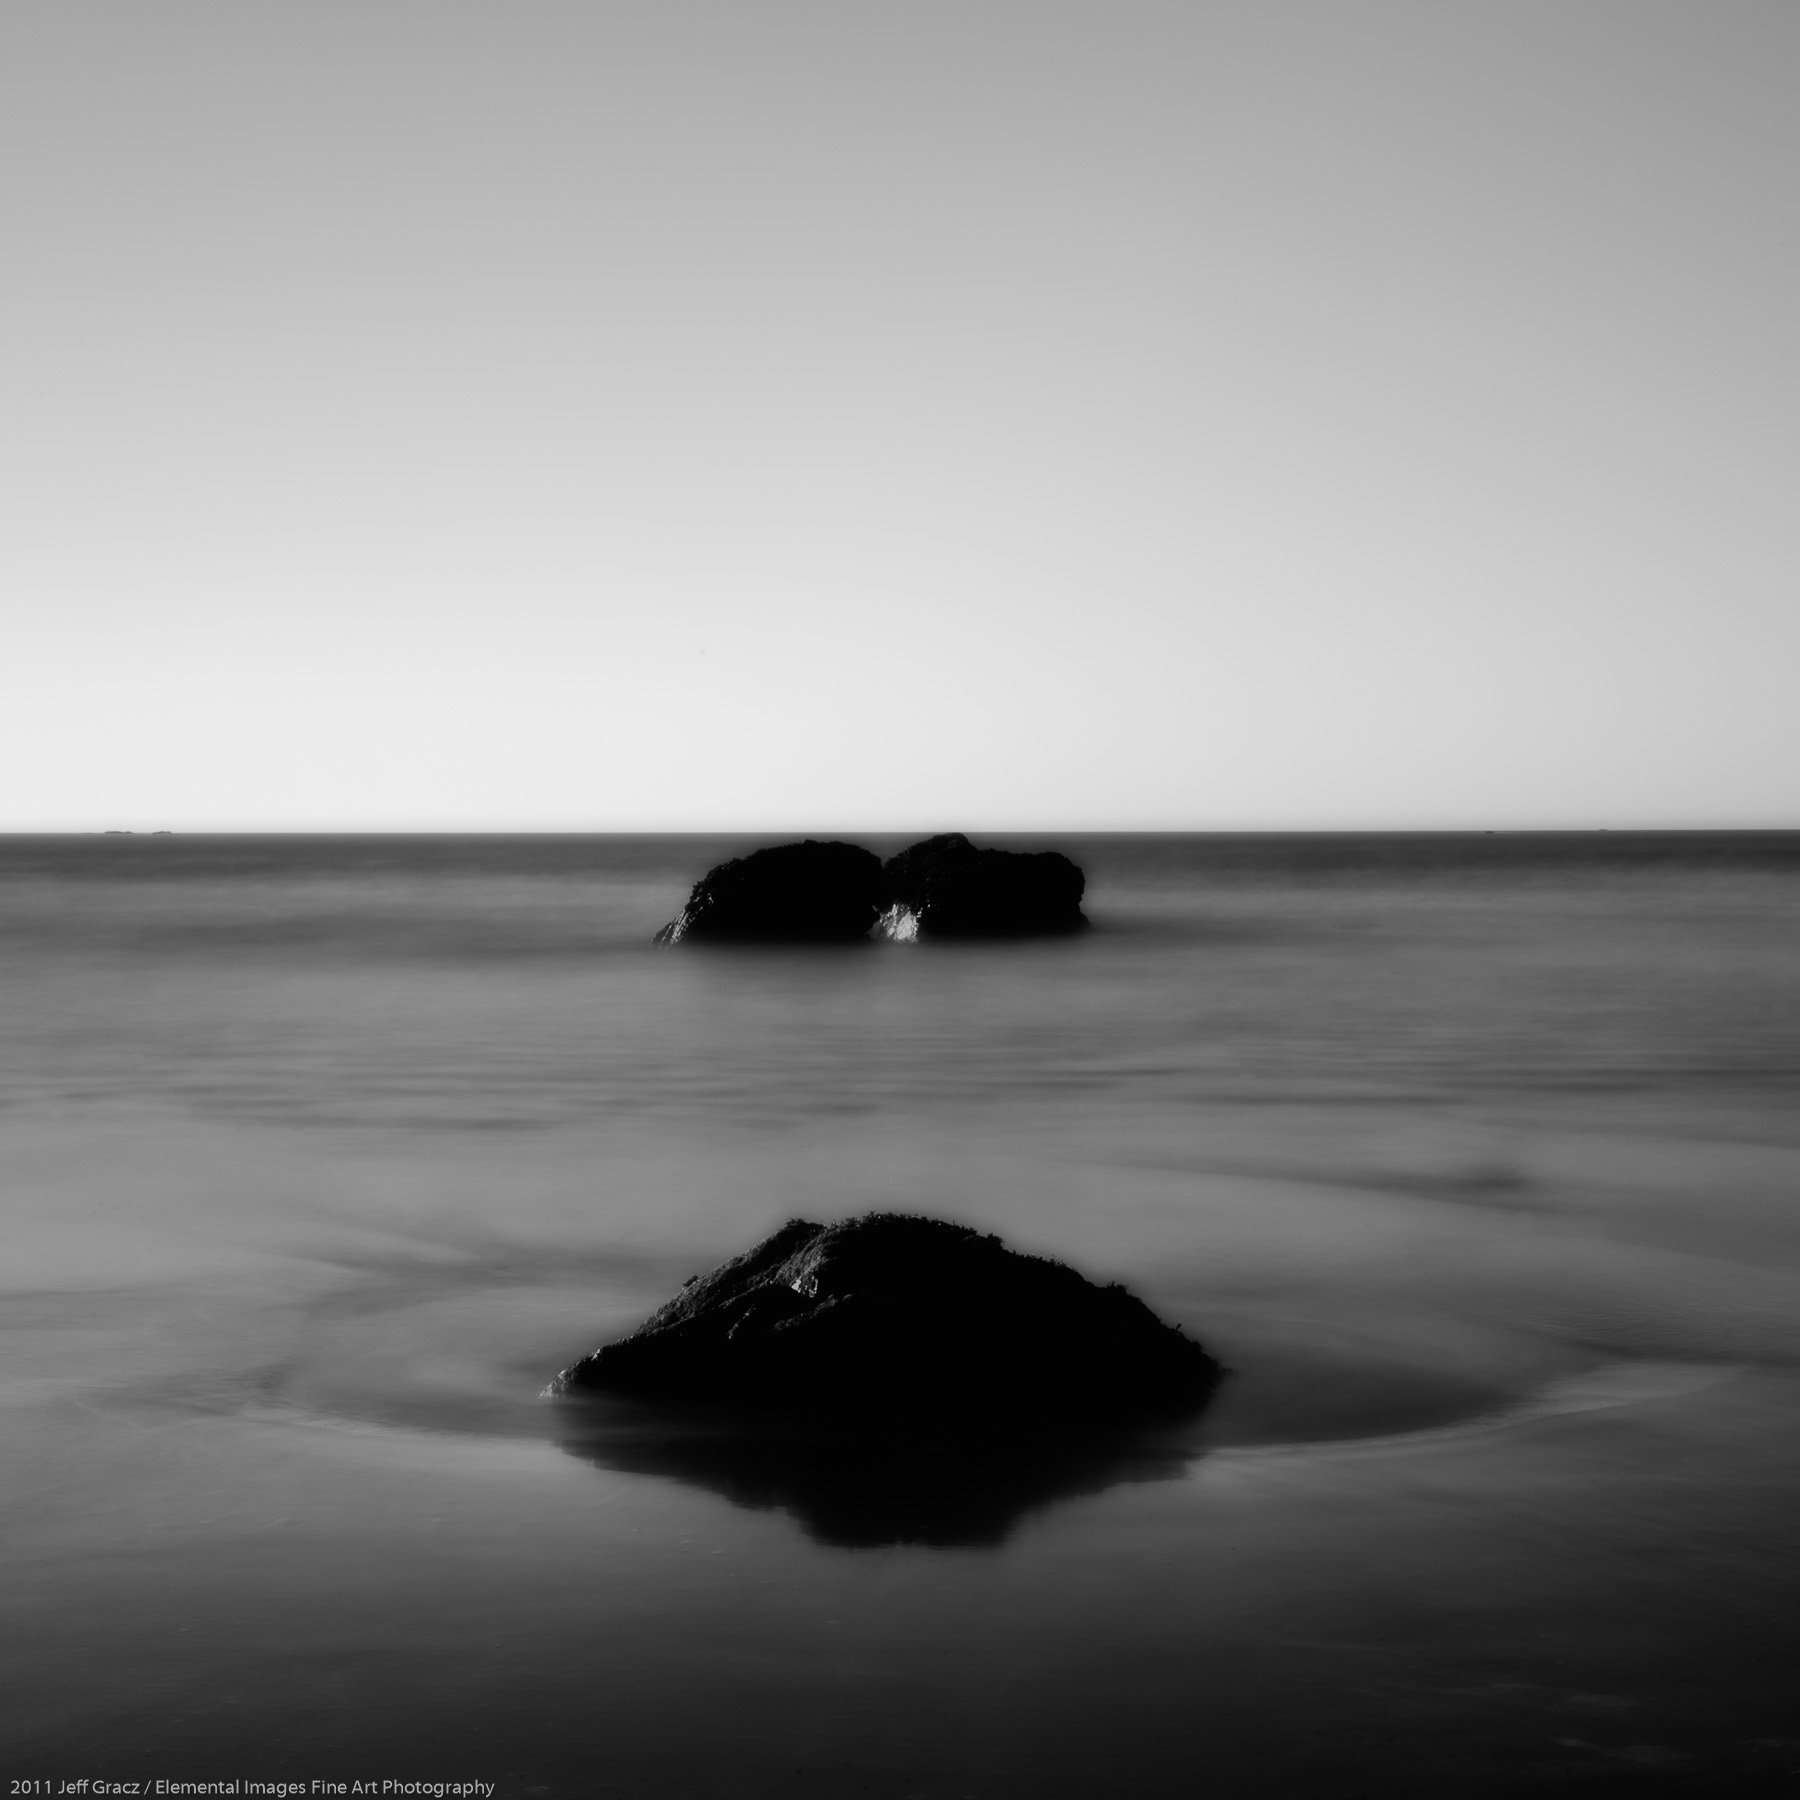 Zen Rocks IV | Trinidad | CA | USA - © 2011 Jeff Gracz / Elemental Images Fine Art Photography - All Rights Reserved Worldwide